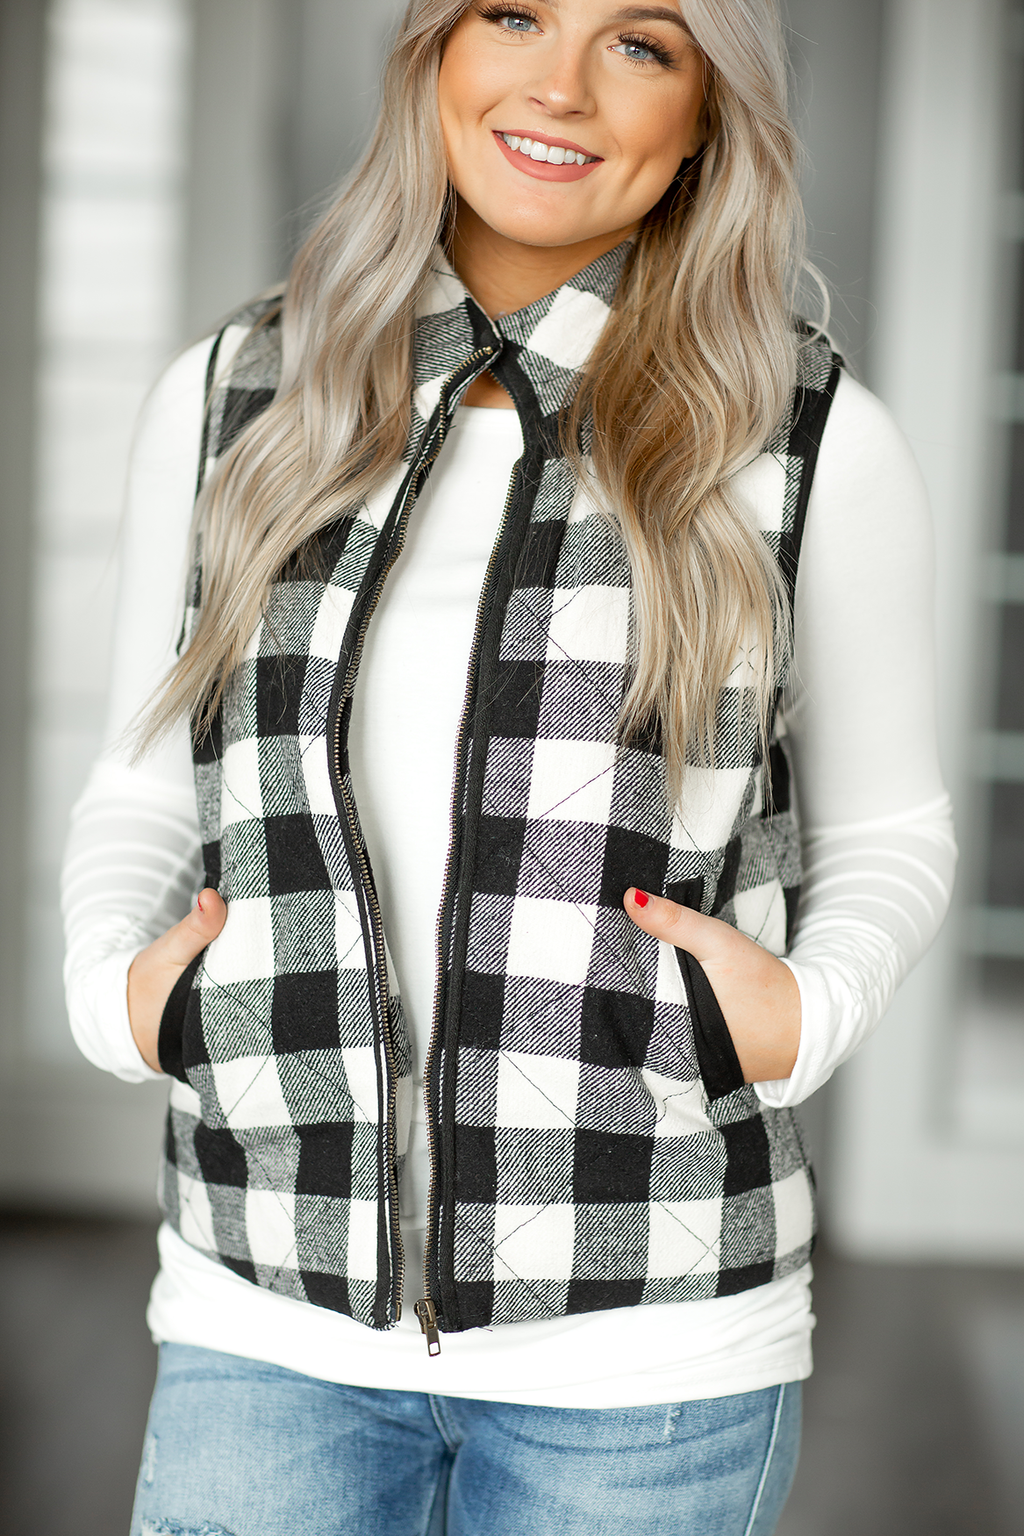 Last to Know Vest in Black and White Plaid